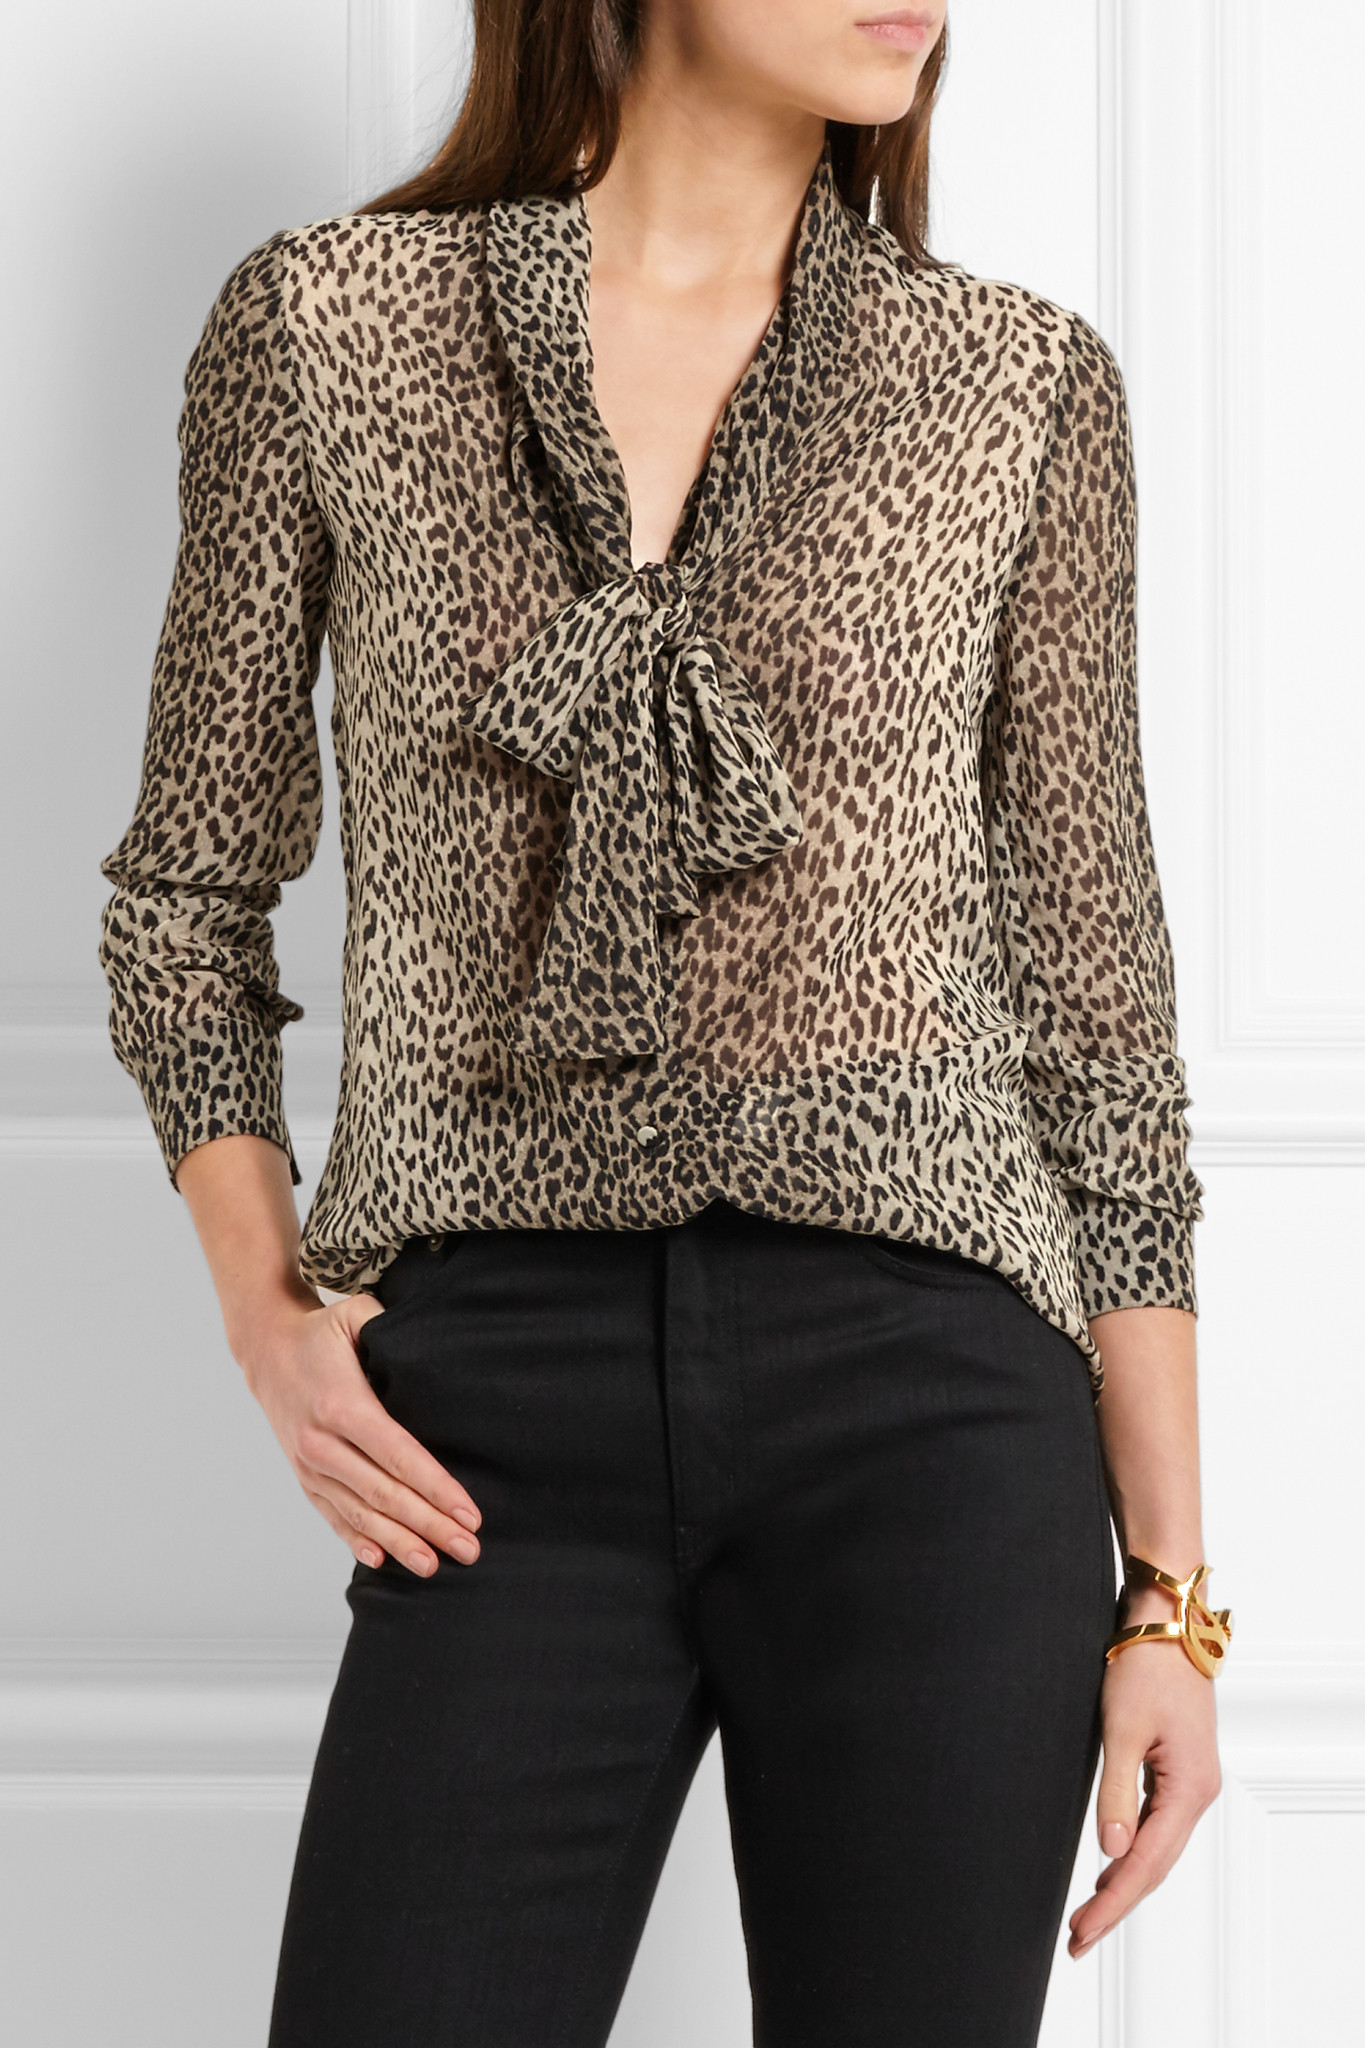 ccc9a8e3cd39d Lyst - Saint Laurent Pussy-bow Leopard-print Silk-georgette Shirt